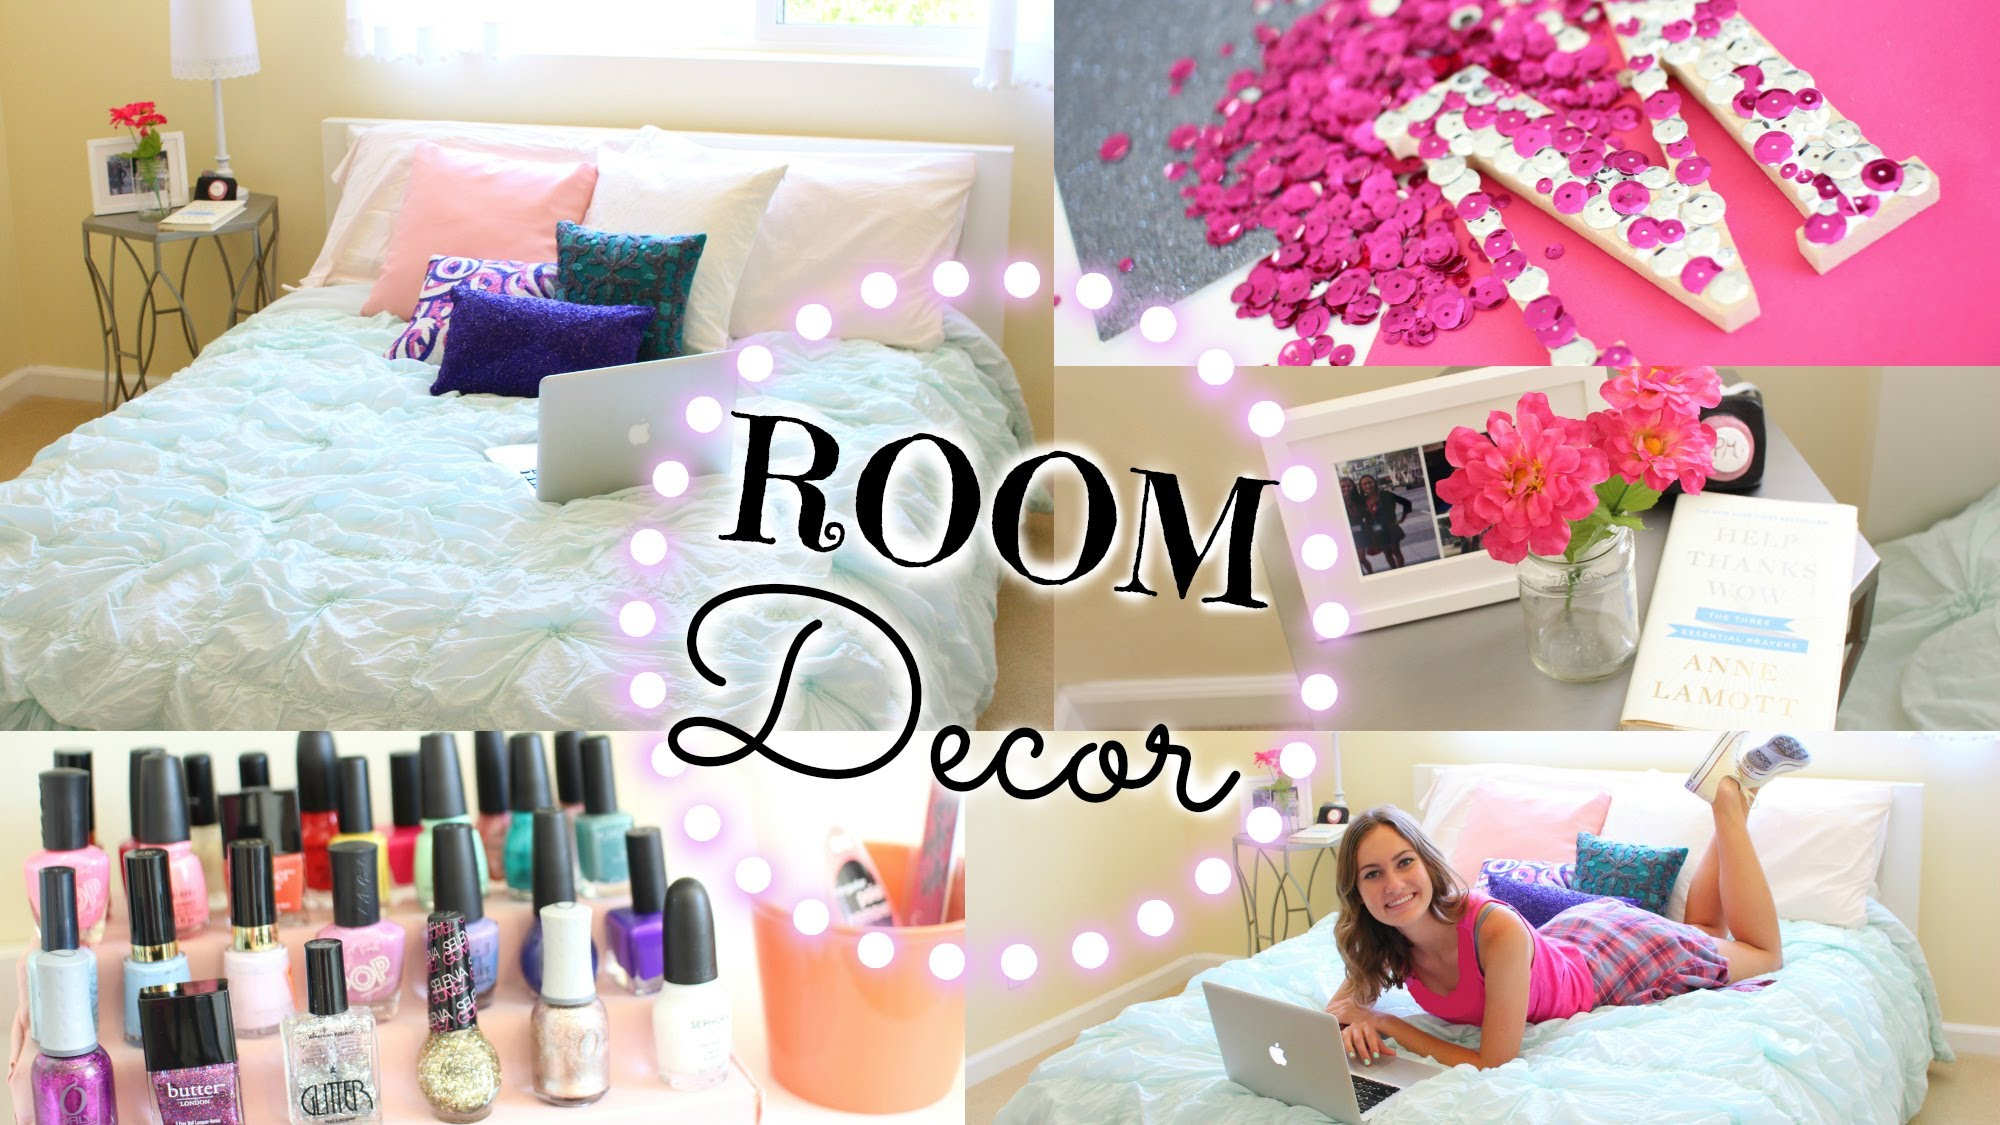 Cool Easy DIY Ways to Re-Decorate Your Room! - YouTube good ideas for decorating your room